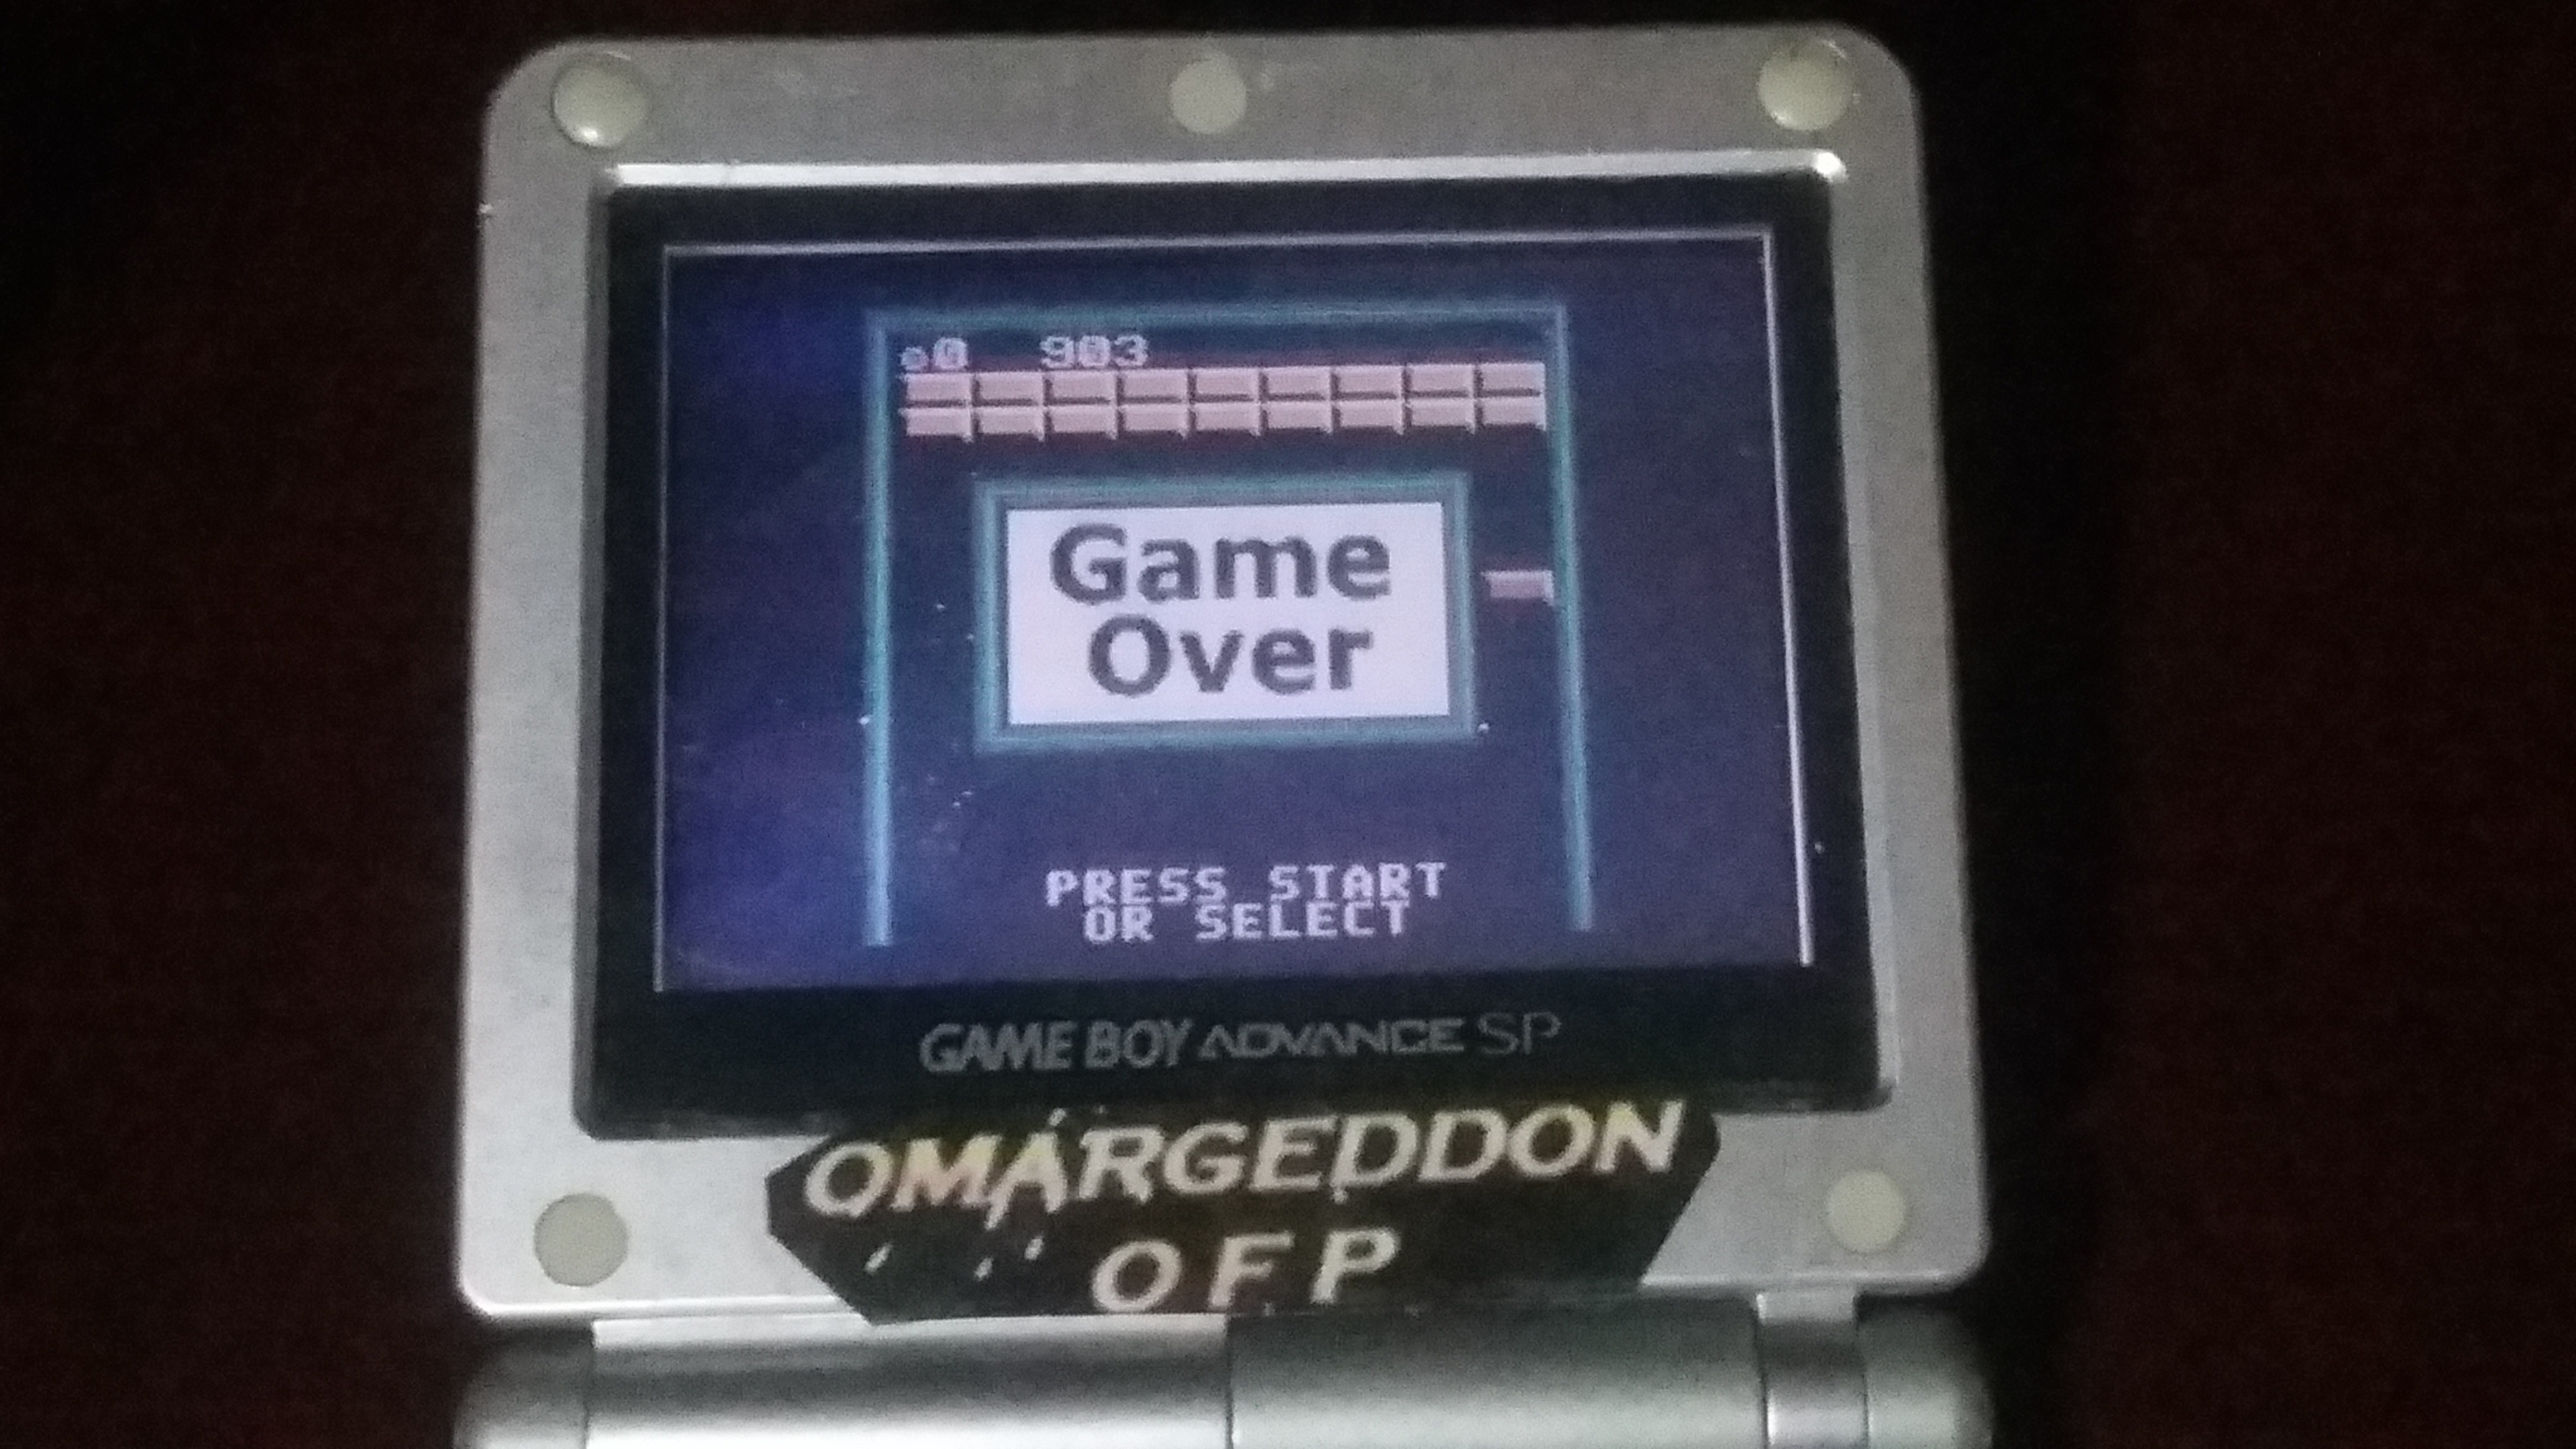 omargeddon: Super Breakout: Progressive (Game Boy Color) 903 points on 2018-04-14 20:54:13